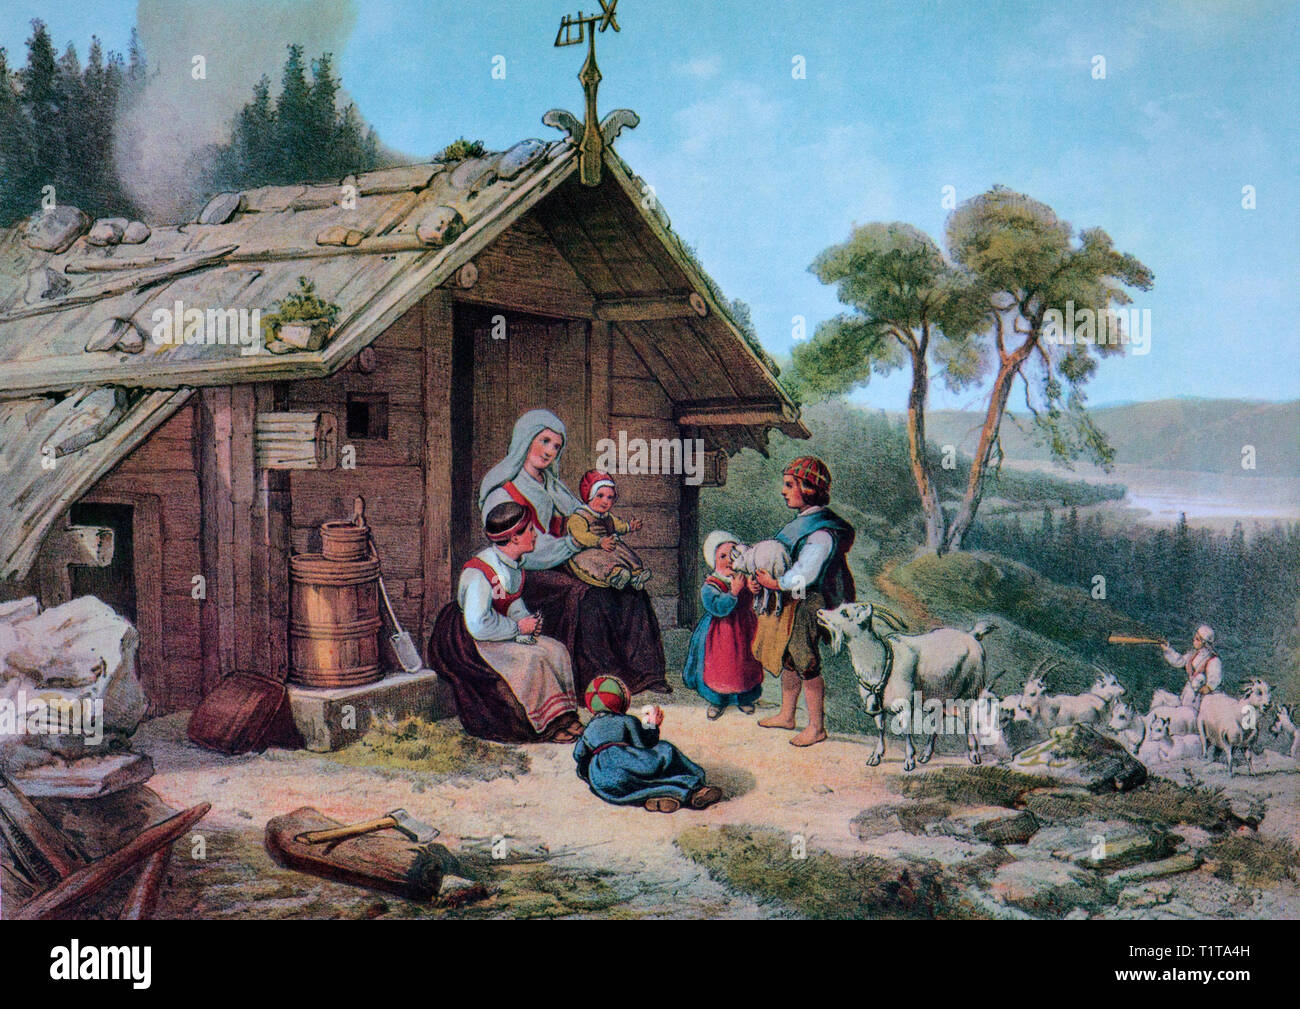 The wife and family of a goat  herdsman by their cottage in Dalarna, a historical province (or landskap) in central Sweden. - Stock Image